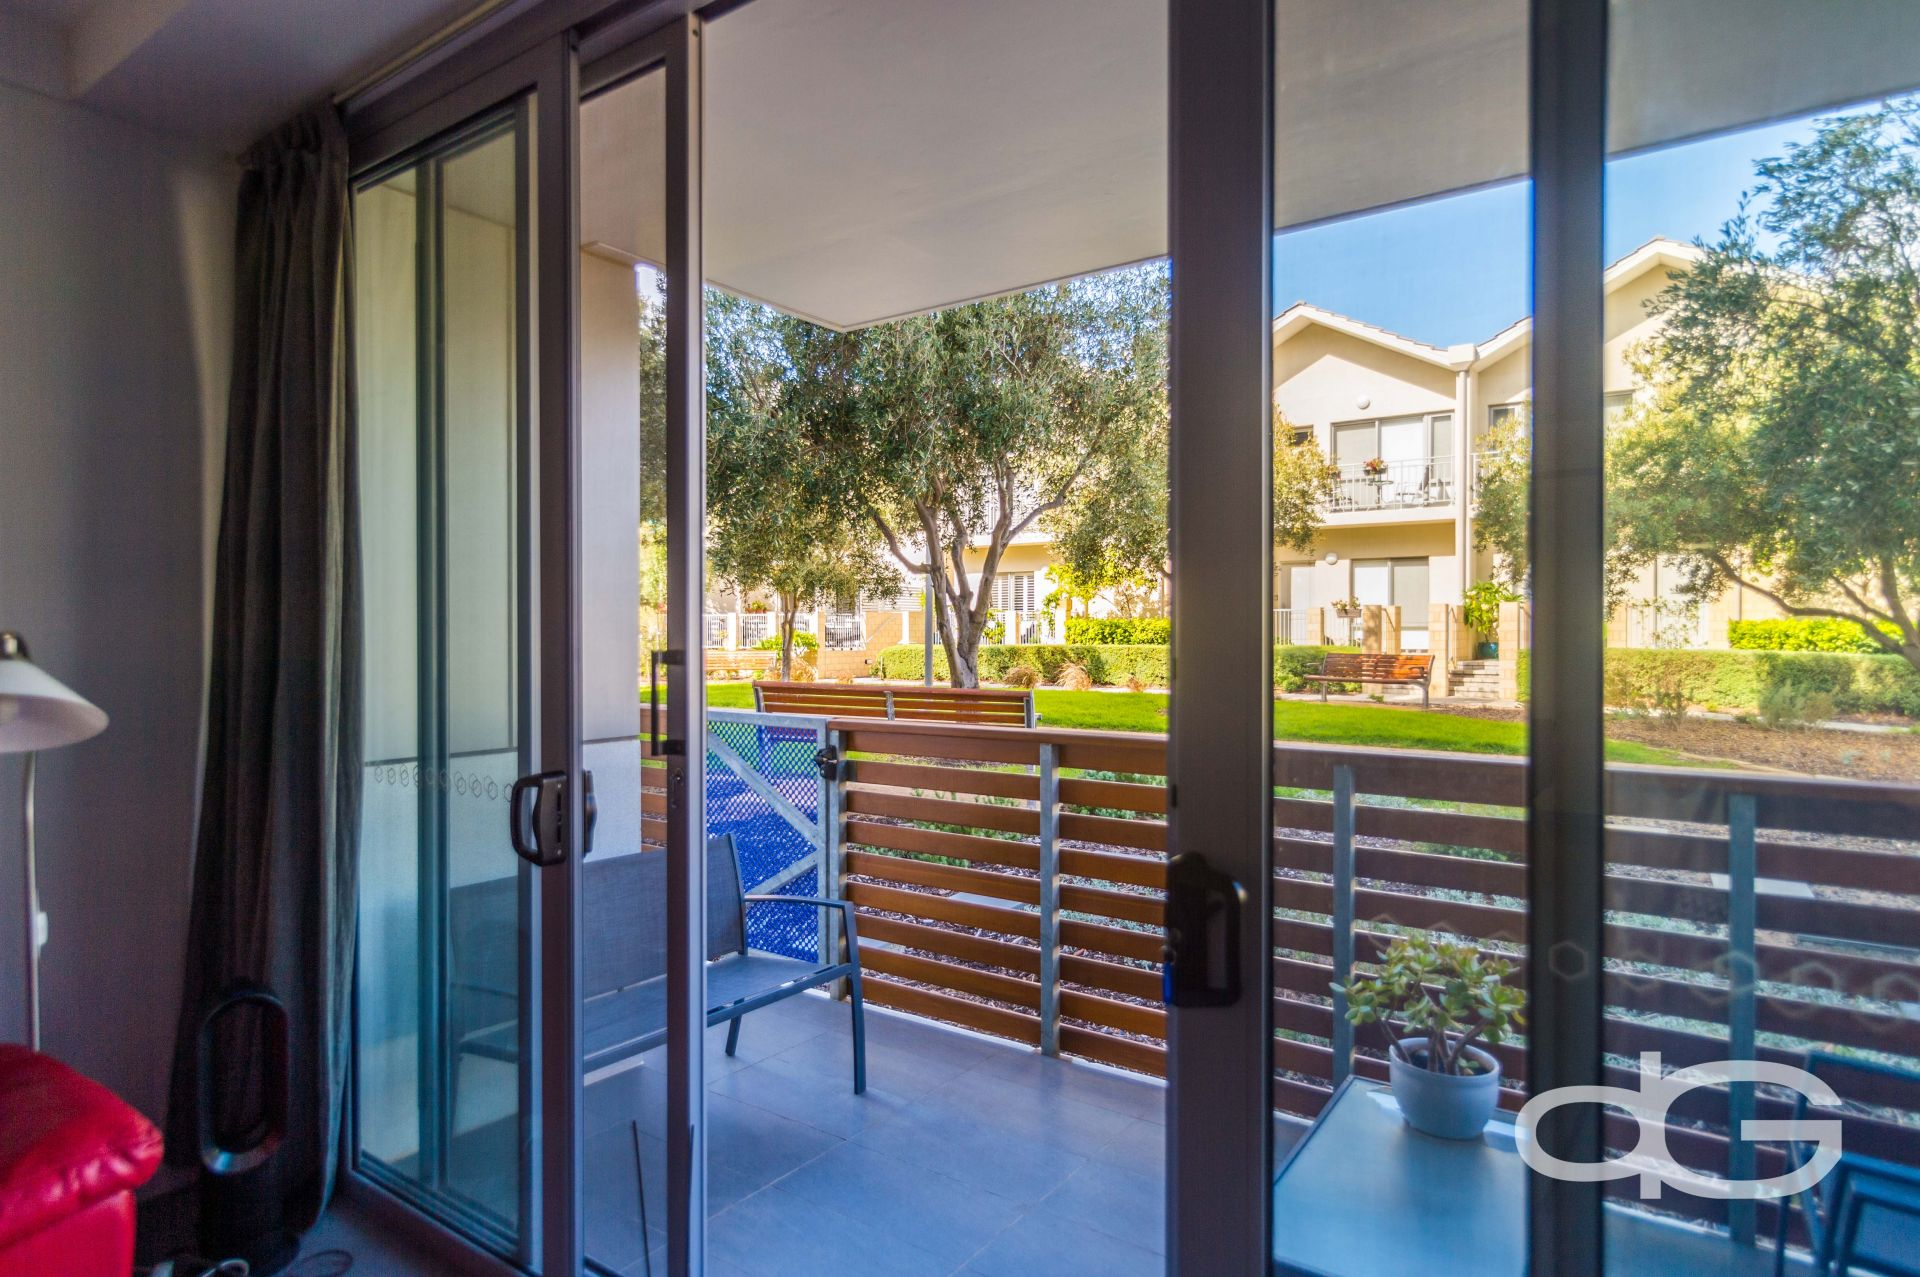 10/34 Shoalwater Street, North Coogee